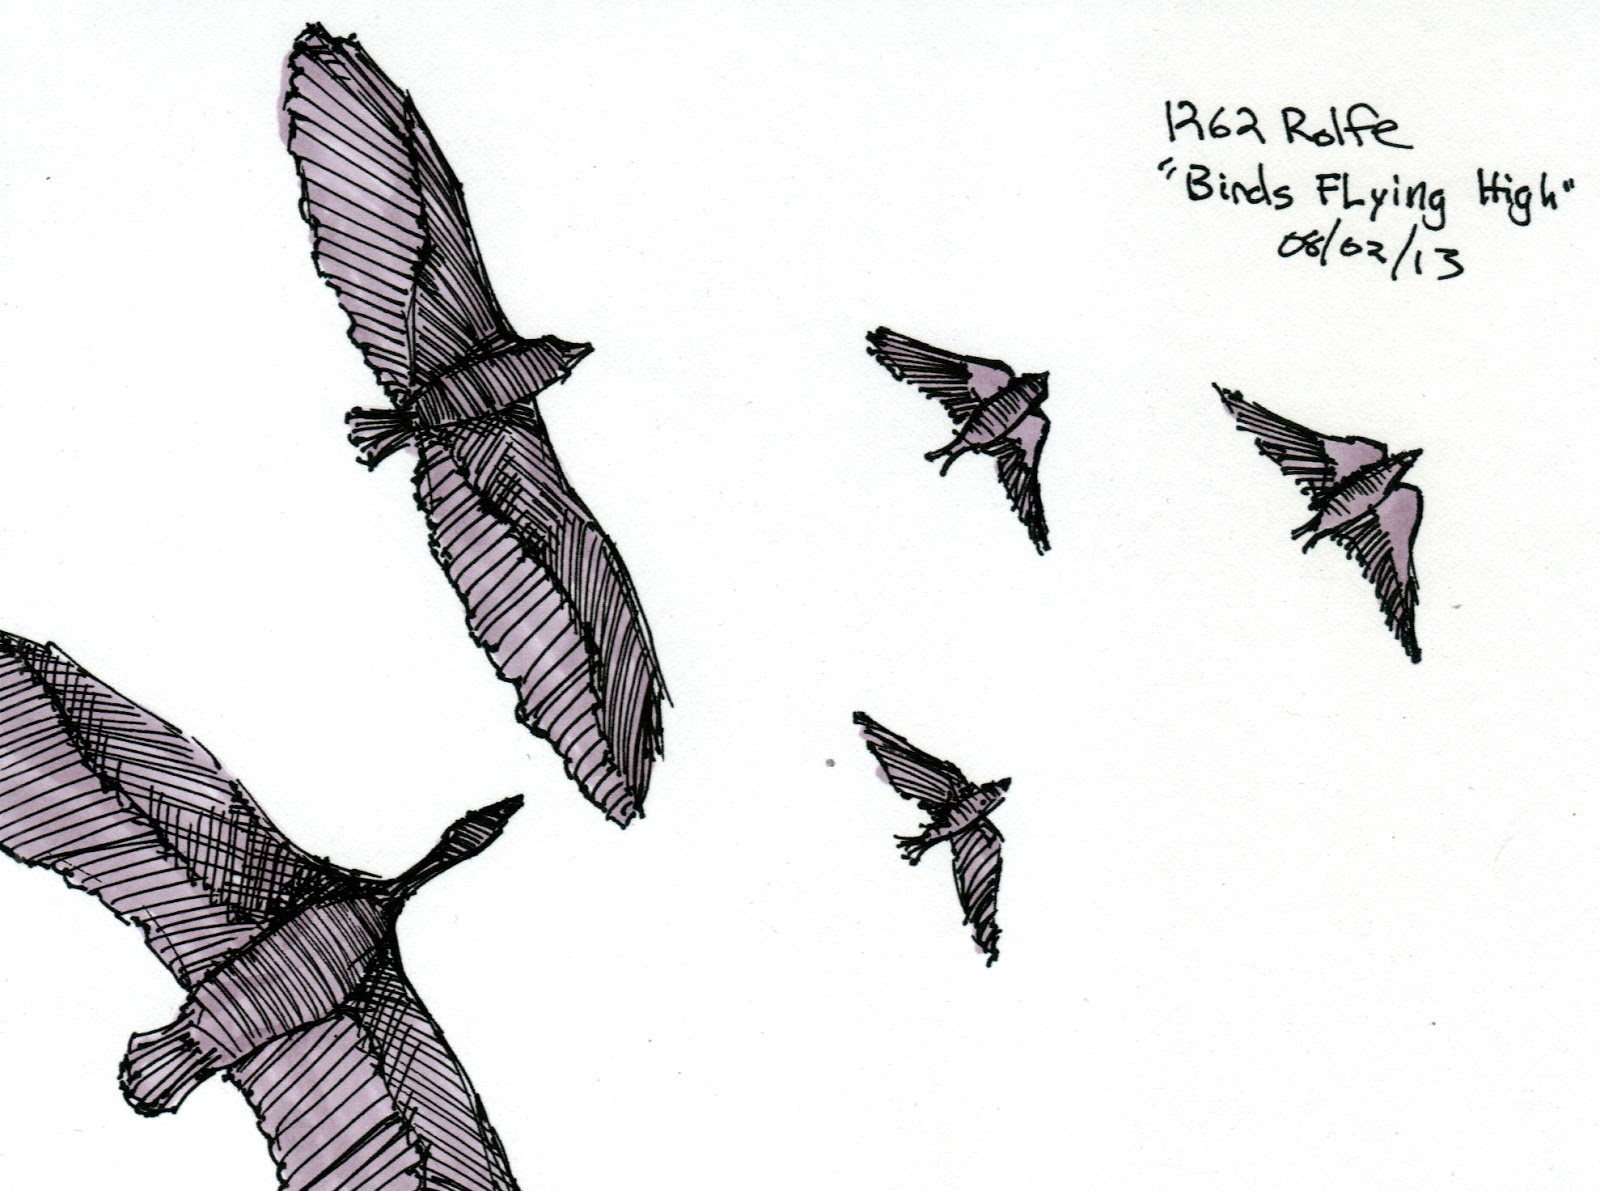 Rolfe Art: 1262 Birds Flying High - photo#16